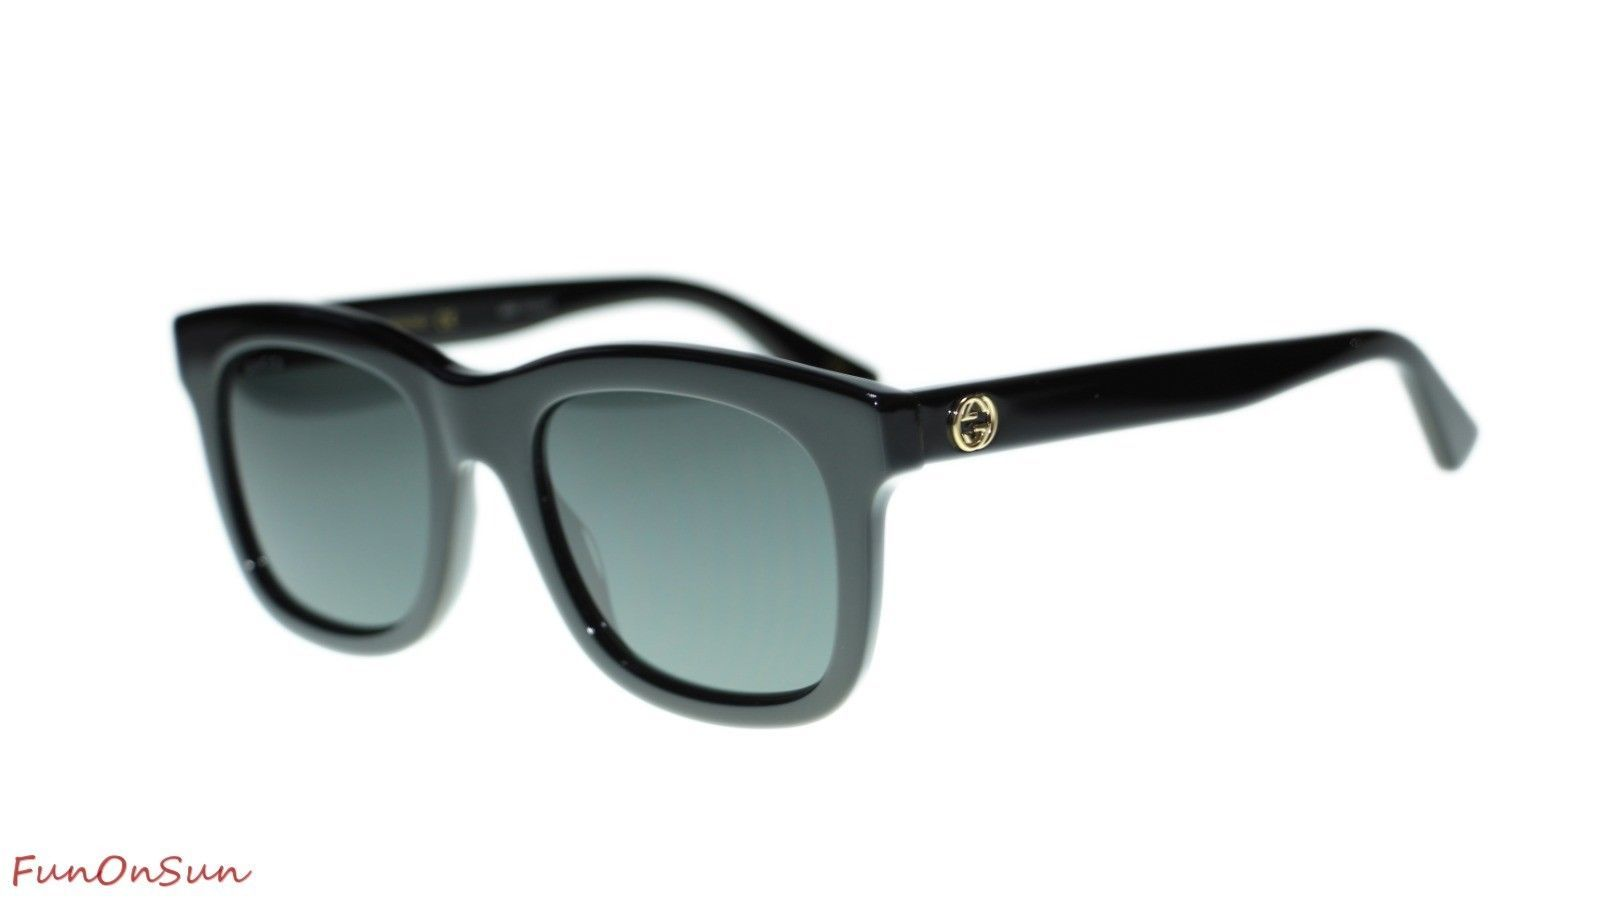 3dae822460f Gucci Women s Sunglasses GG0326S 001 Black and 35 similar items. 10